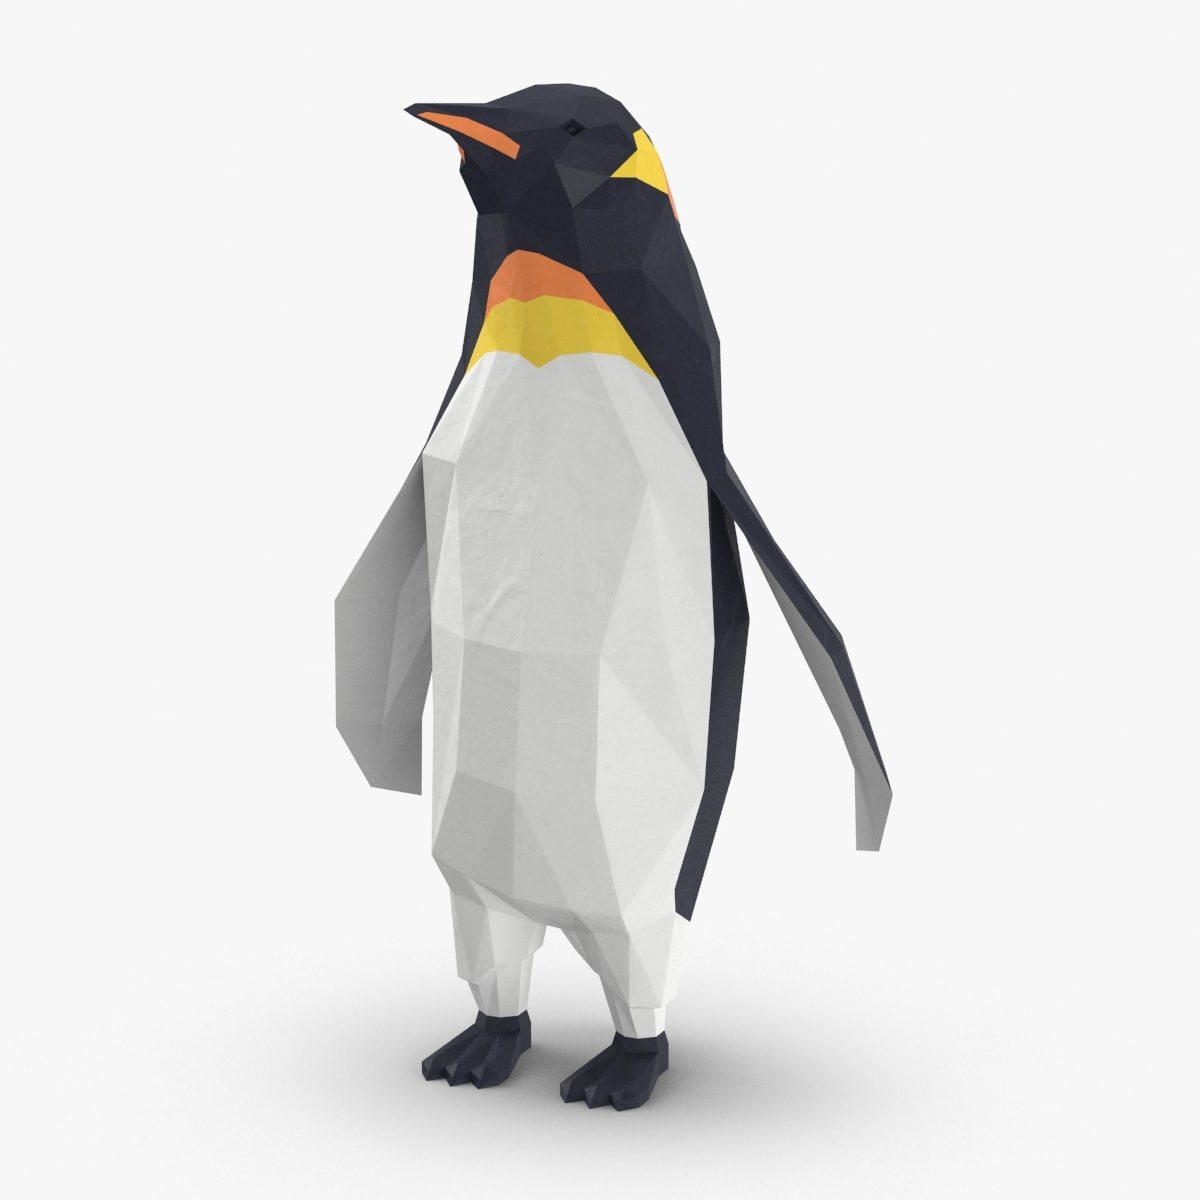 penguin----swaying model